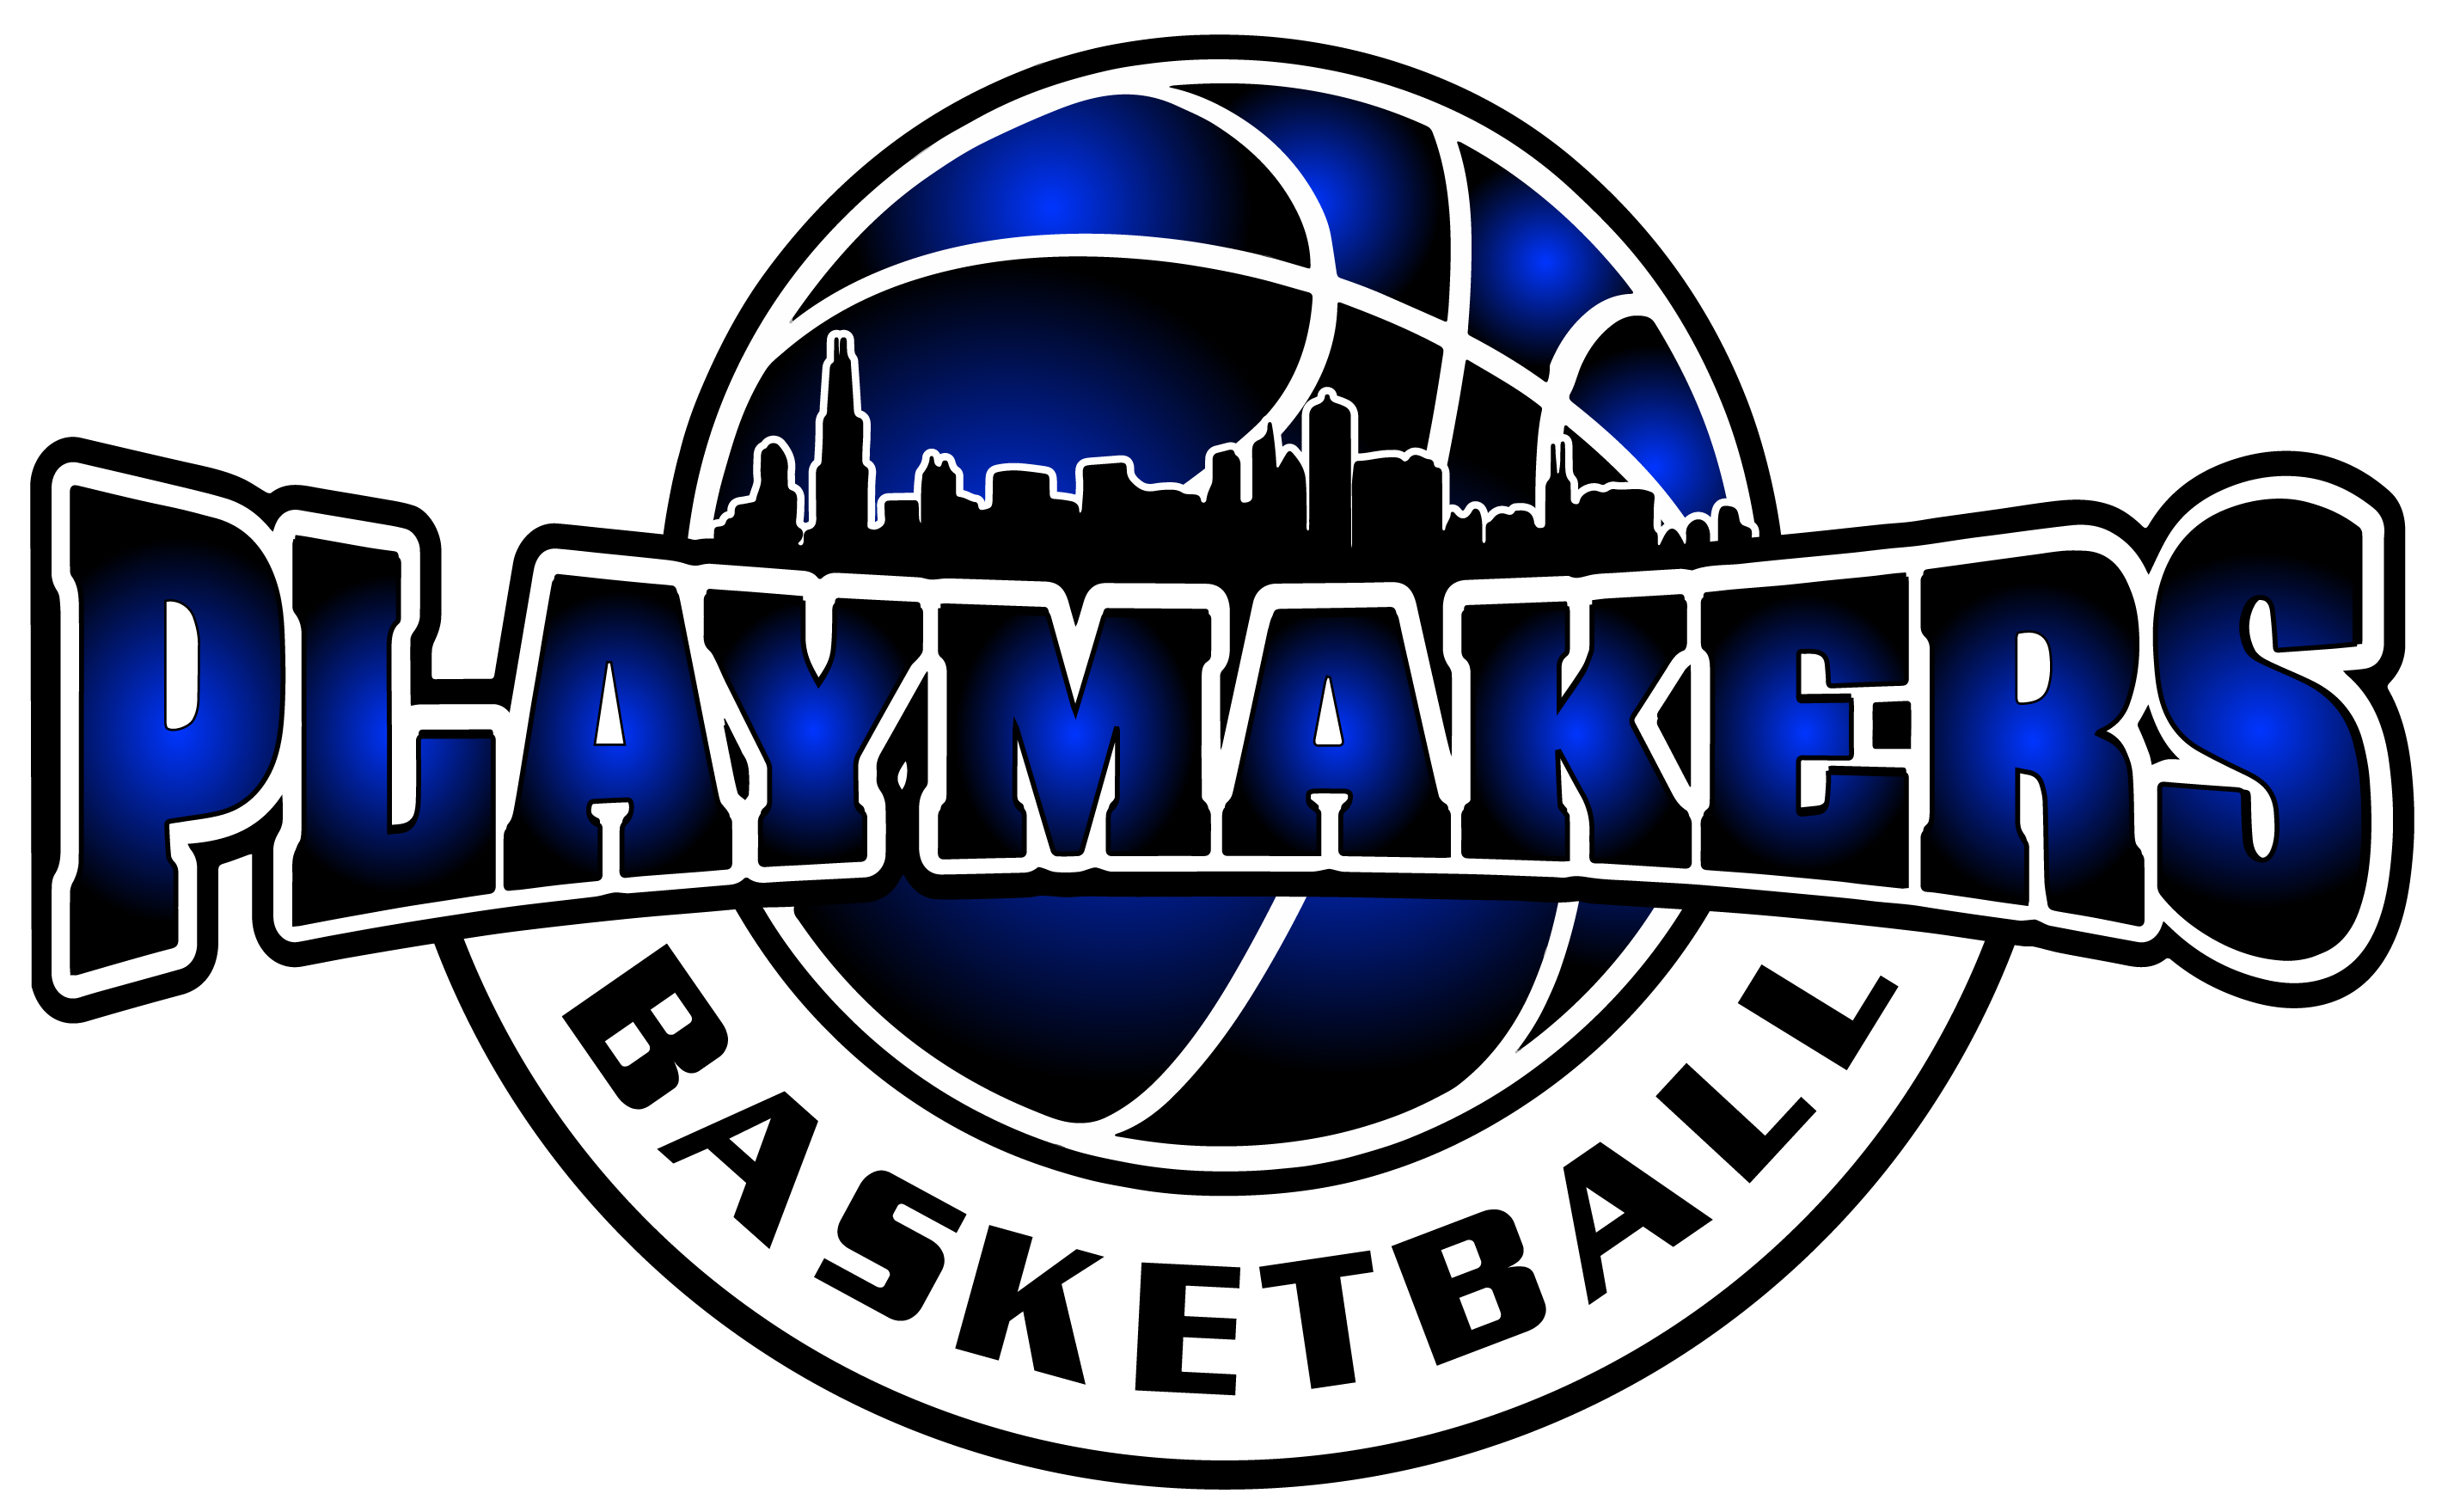 Playmakers_FINAL_Playmakers LOGO